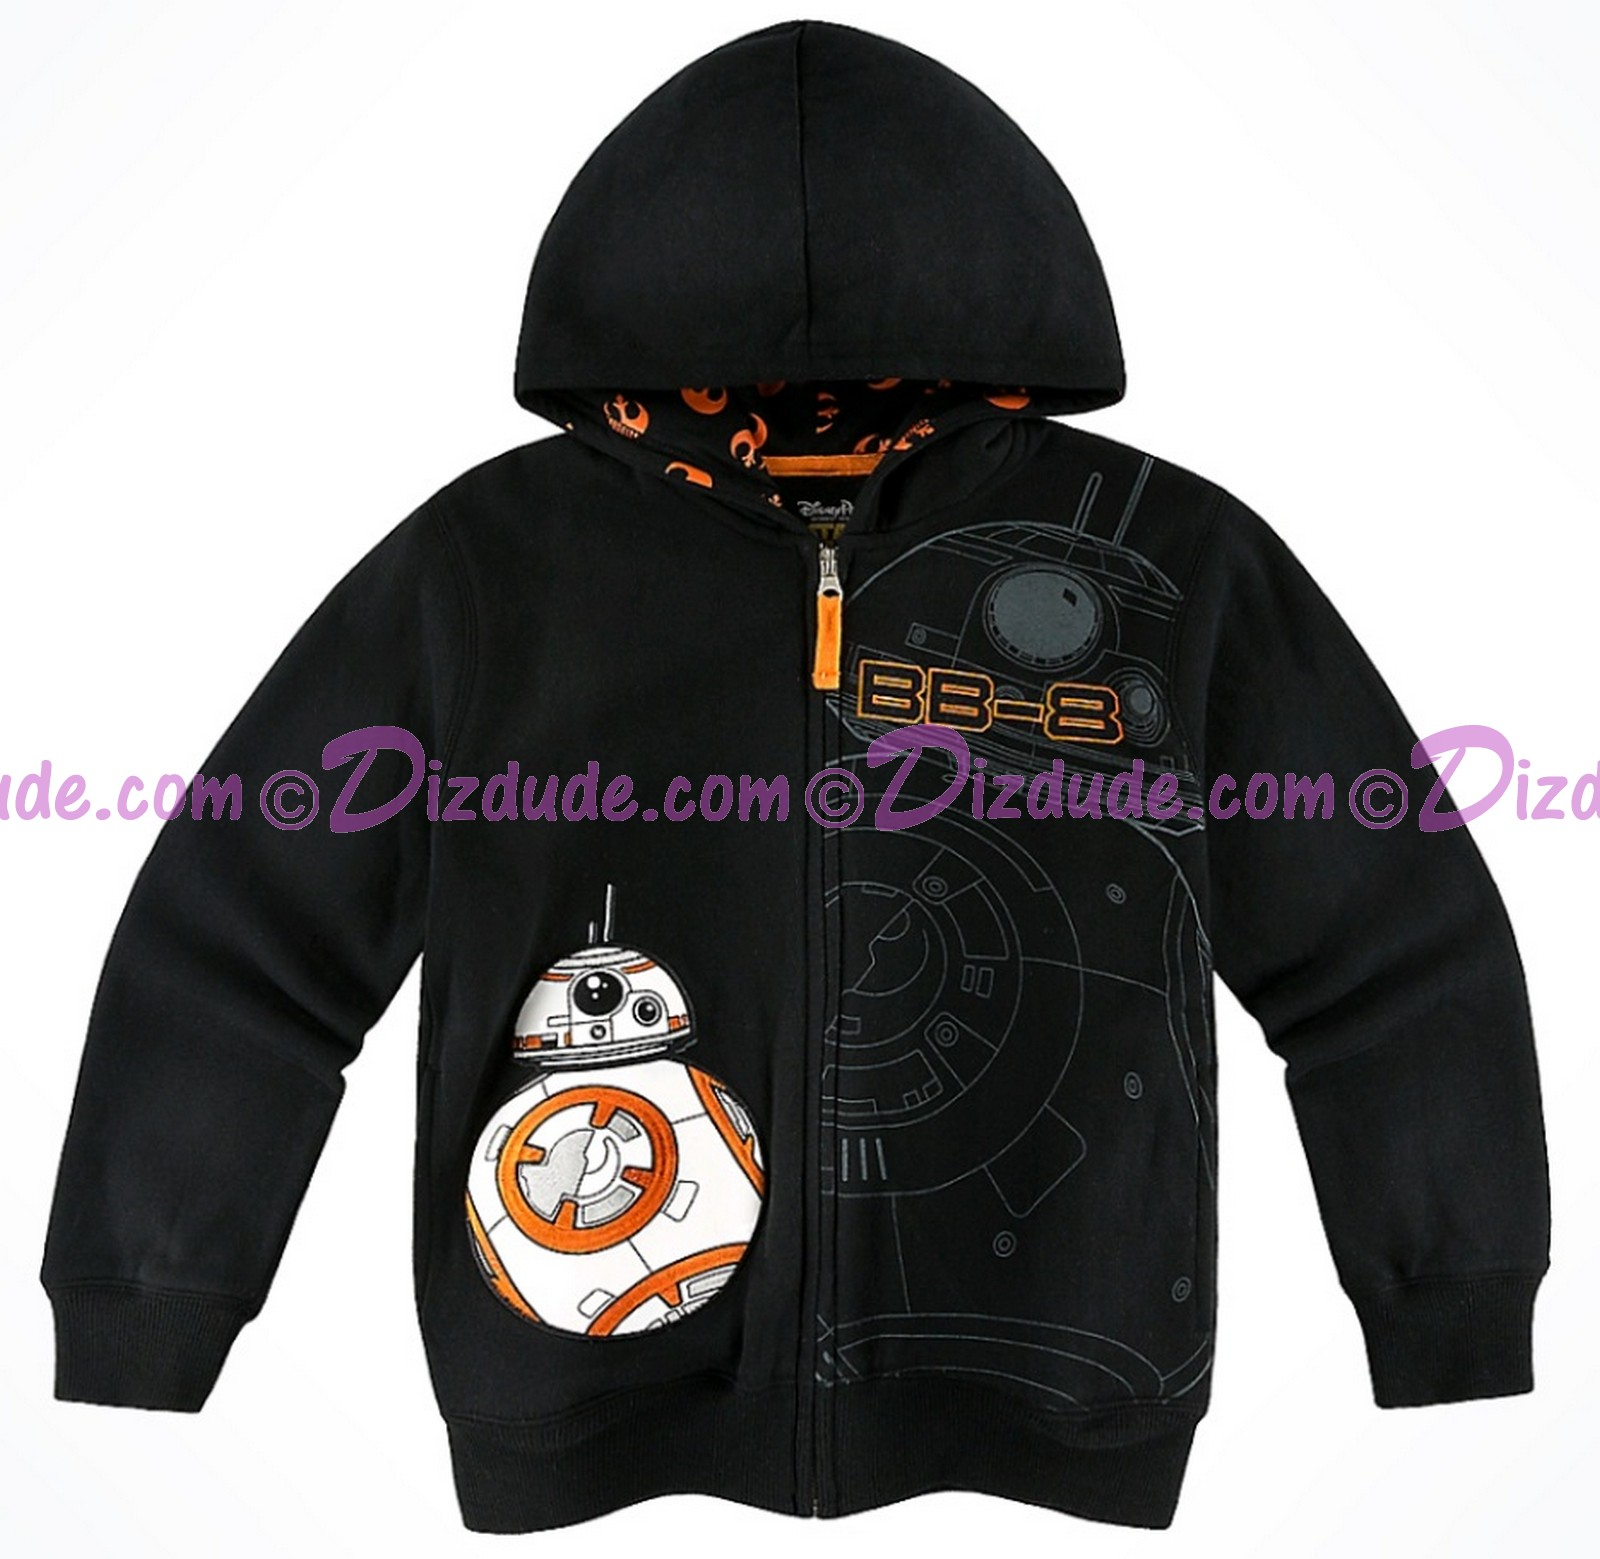 Disney Star Wars BB-8 Youth Zip Hoodie  © Dizdude.com